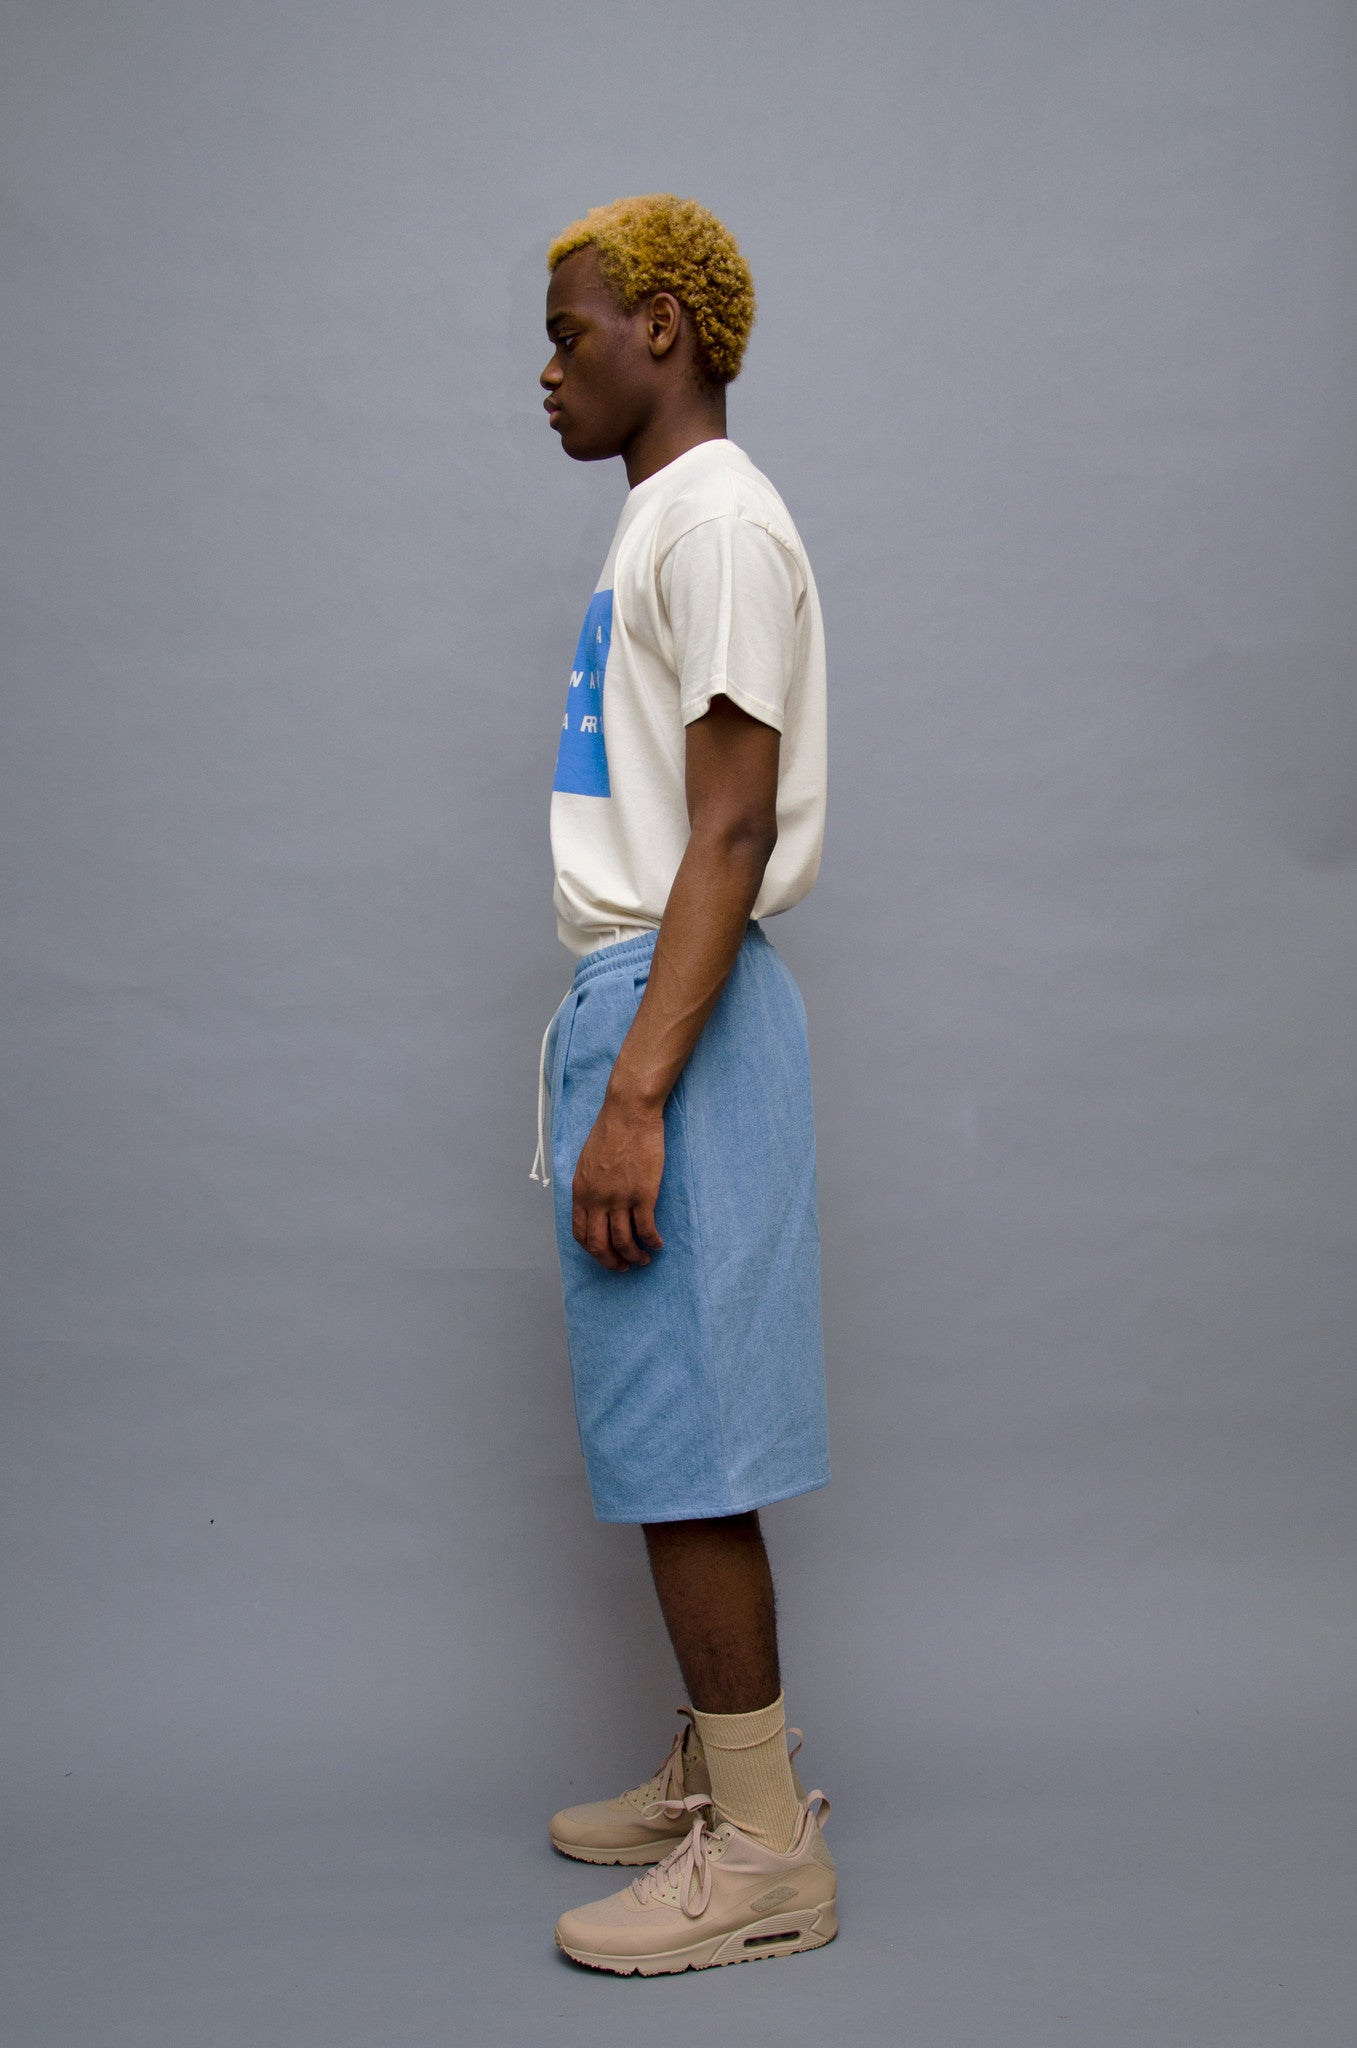 The North Hill Artist's Shorts is a made in France shorts.